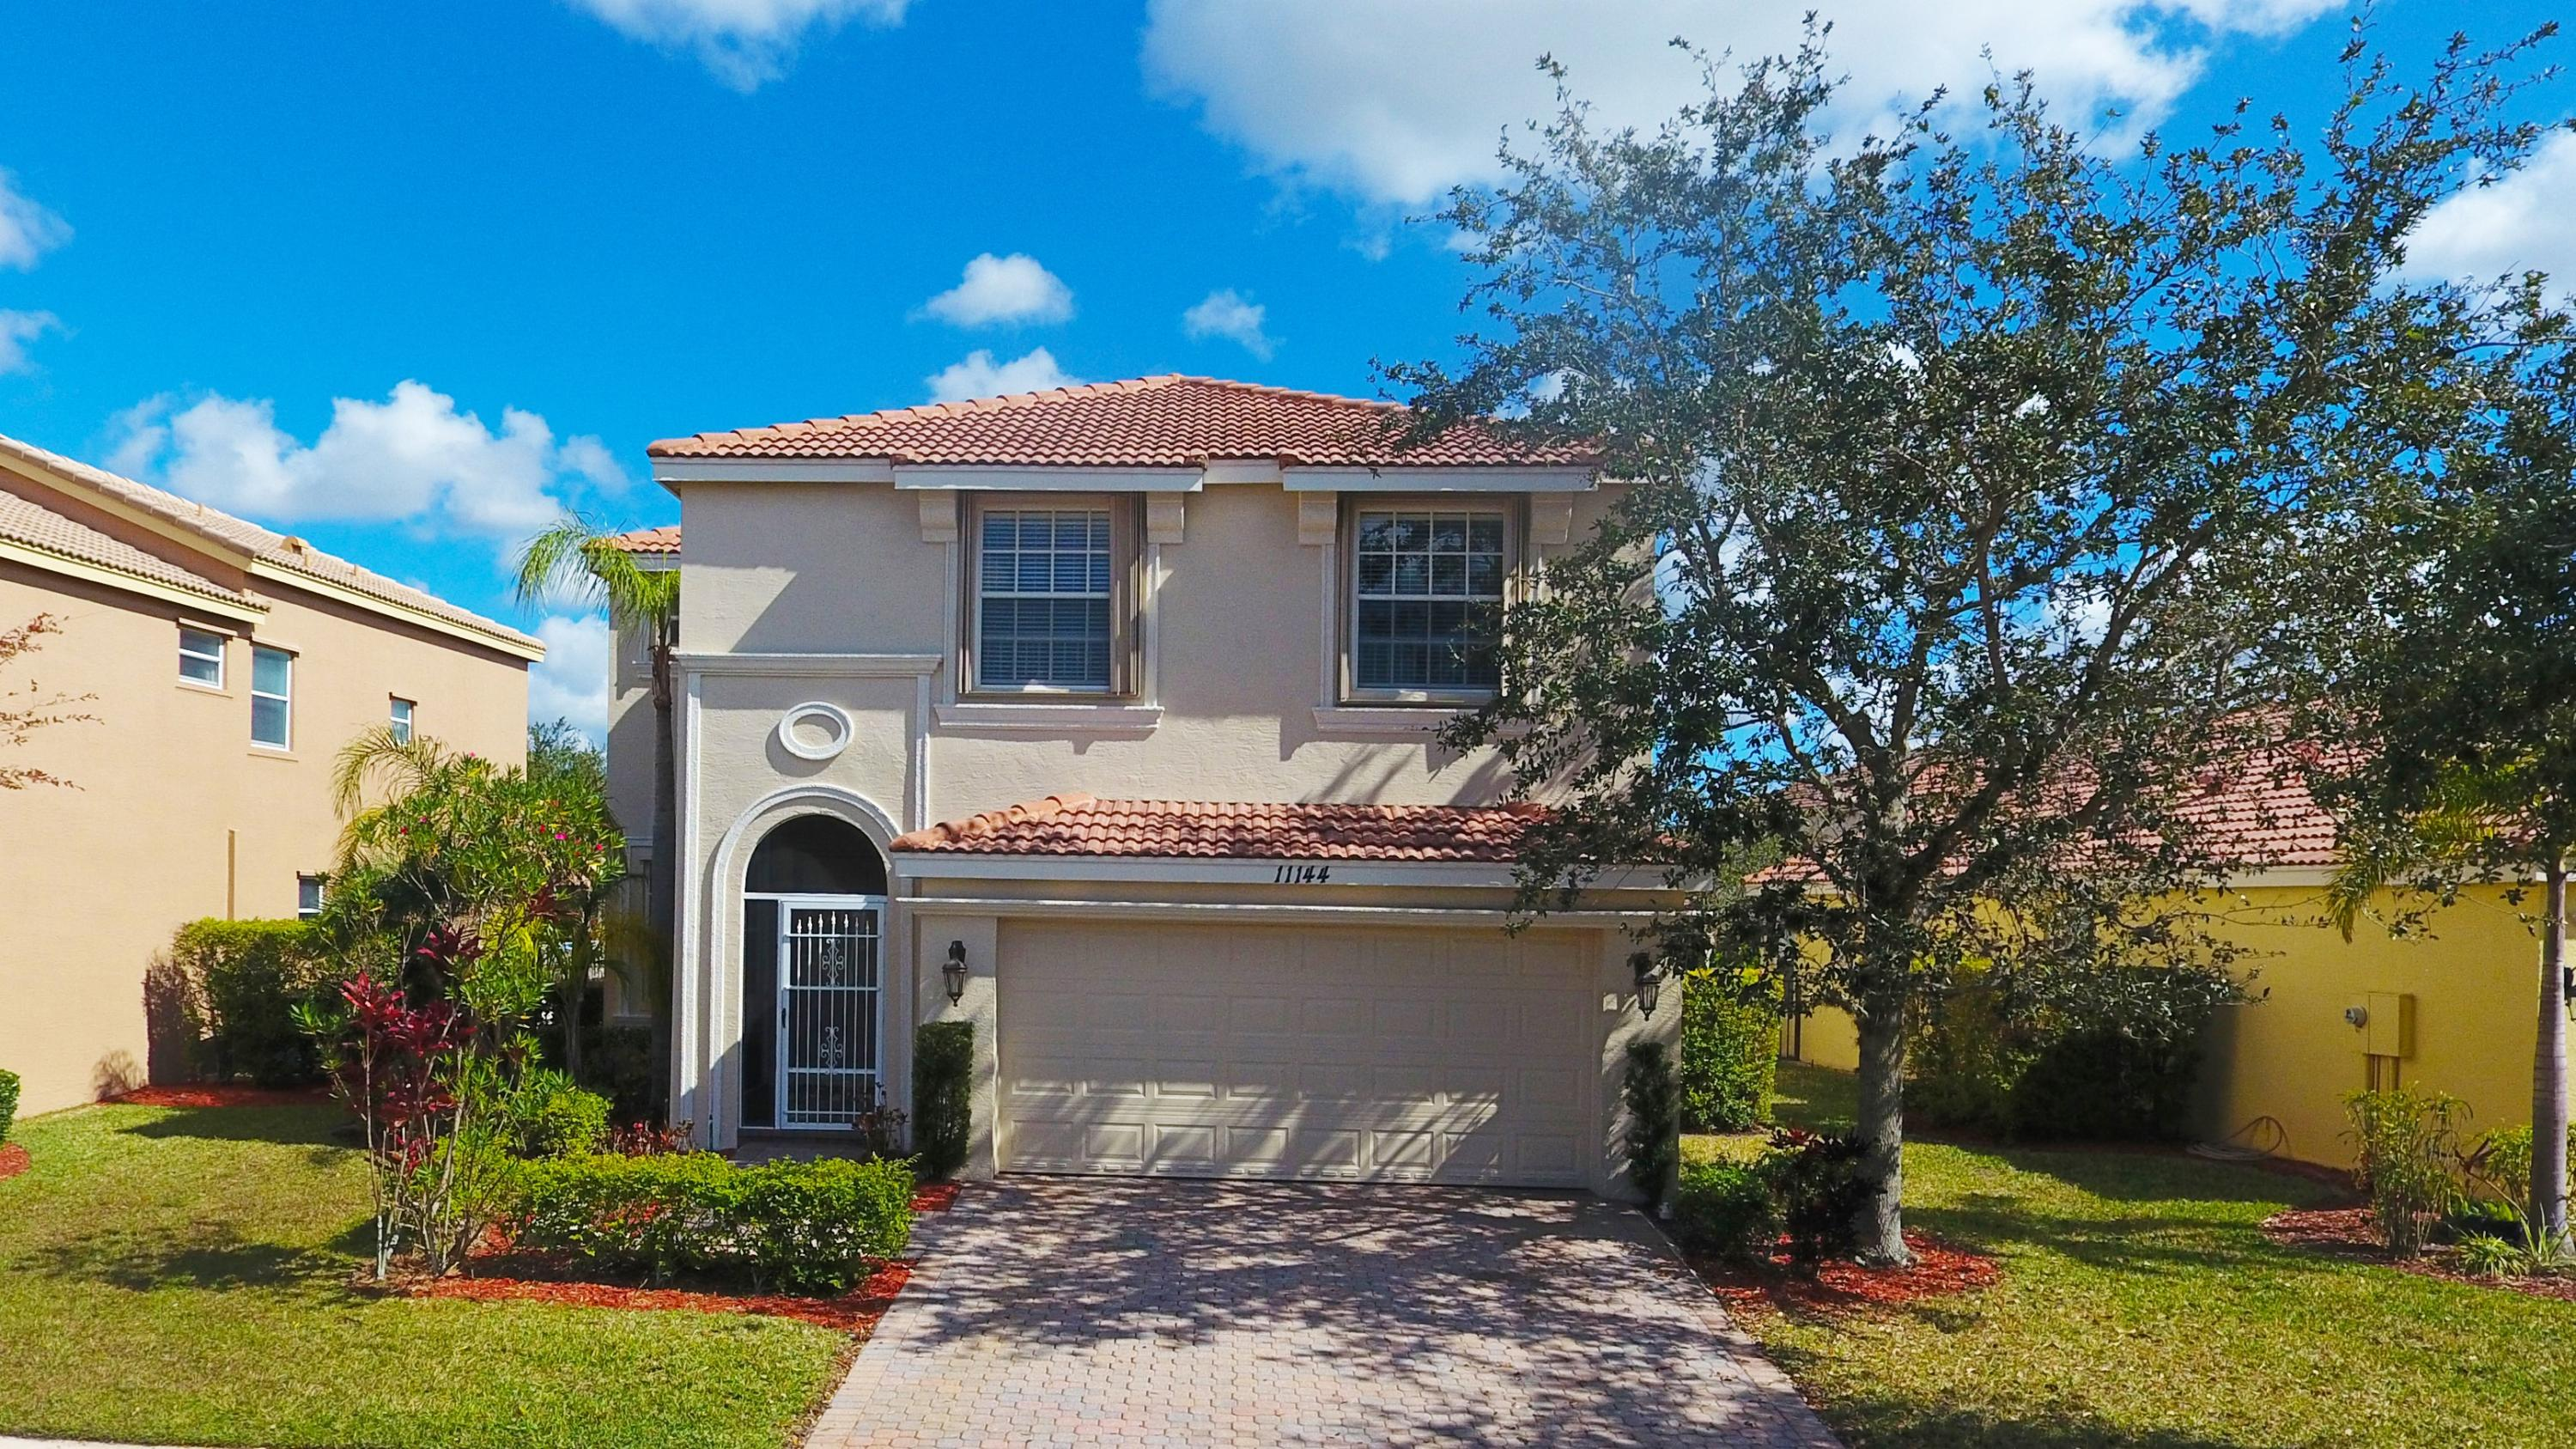 Welcome Home to highly desired Tradition! This 4 bedroom, 2 1/2 bath home boasts: freshly painted exterior and interior, screened front entry, new flooring in main living area, new kitchen appliances, abundant natural lighting, spacious master suite with walk in closet, upstairs windows feature child gates for safety, fenced in backyard, decorative driveway pavers and so much more.  Within walking distance to the clubhouse and pool. Moments from I-95 & Conveniently located close to everything!